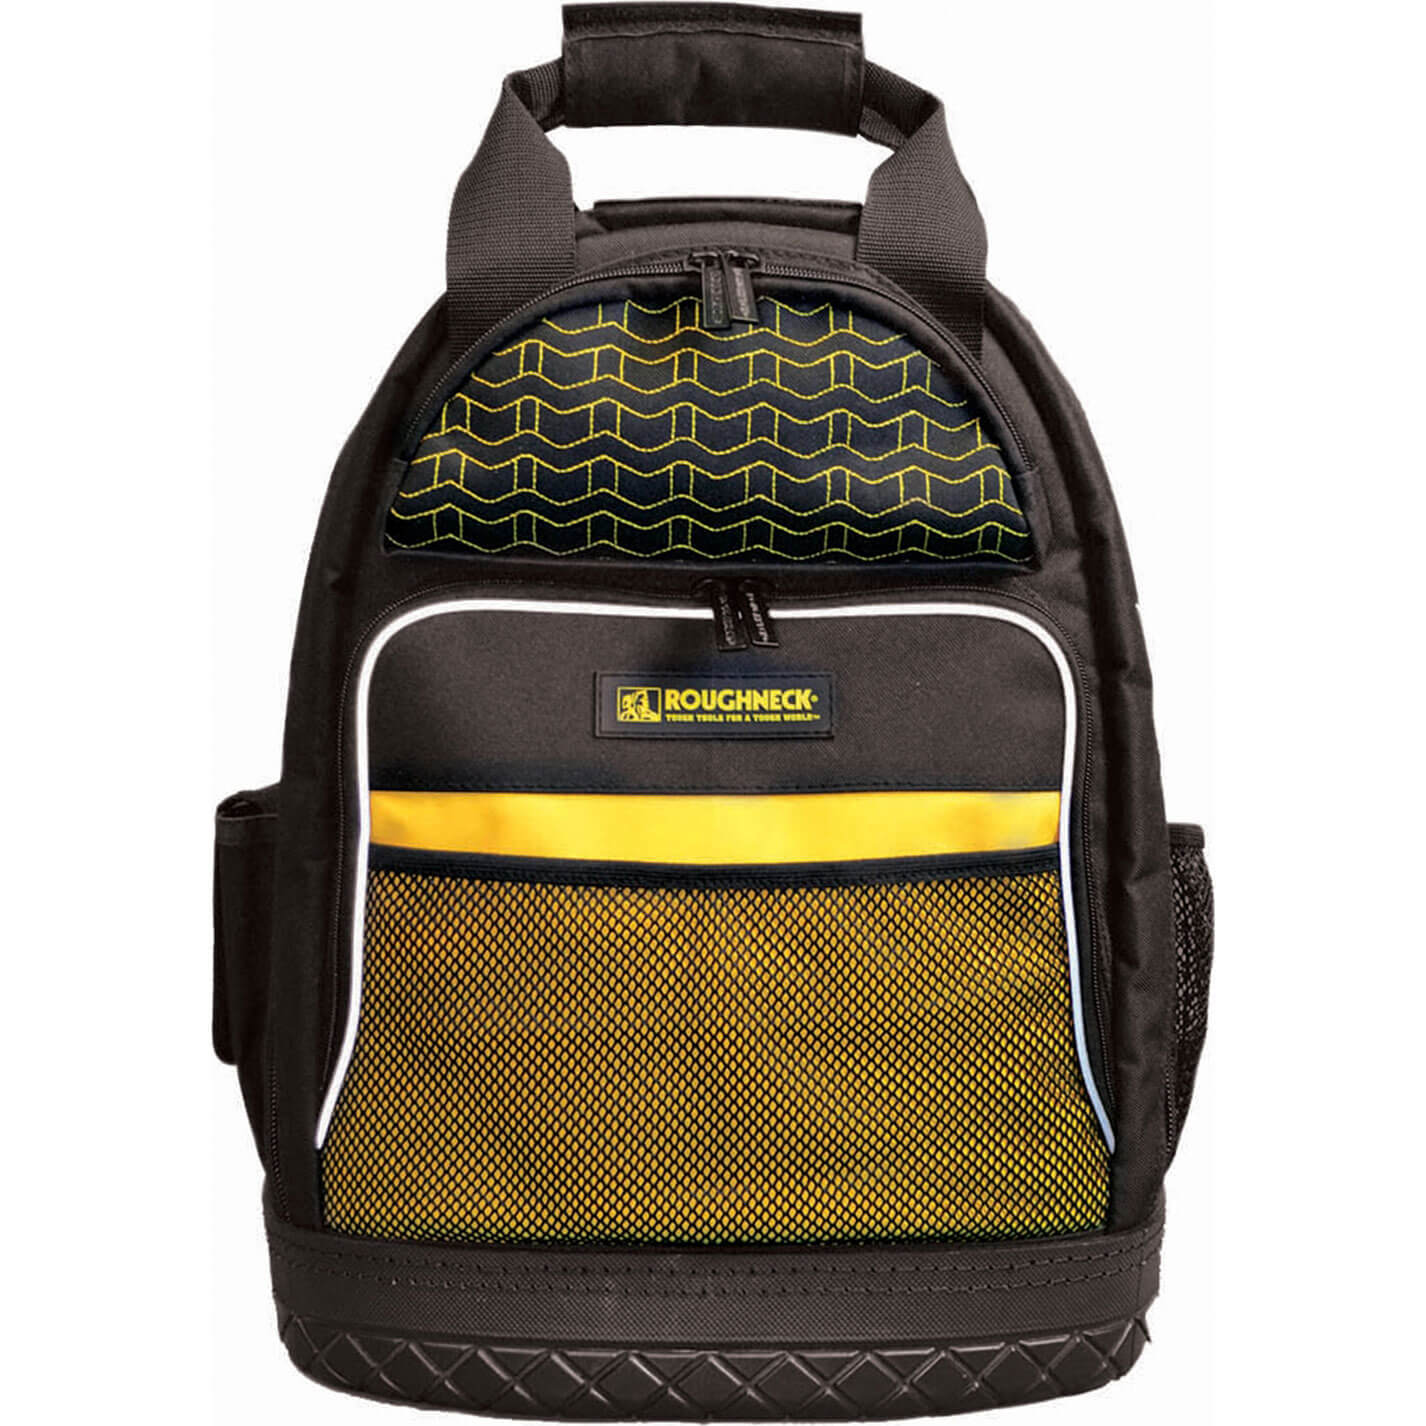 Image of Roughneck Heavy Duty Backpack